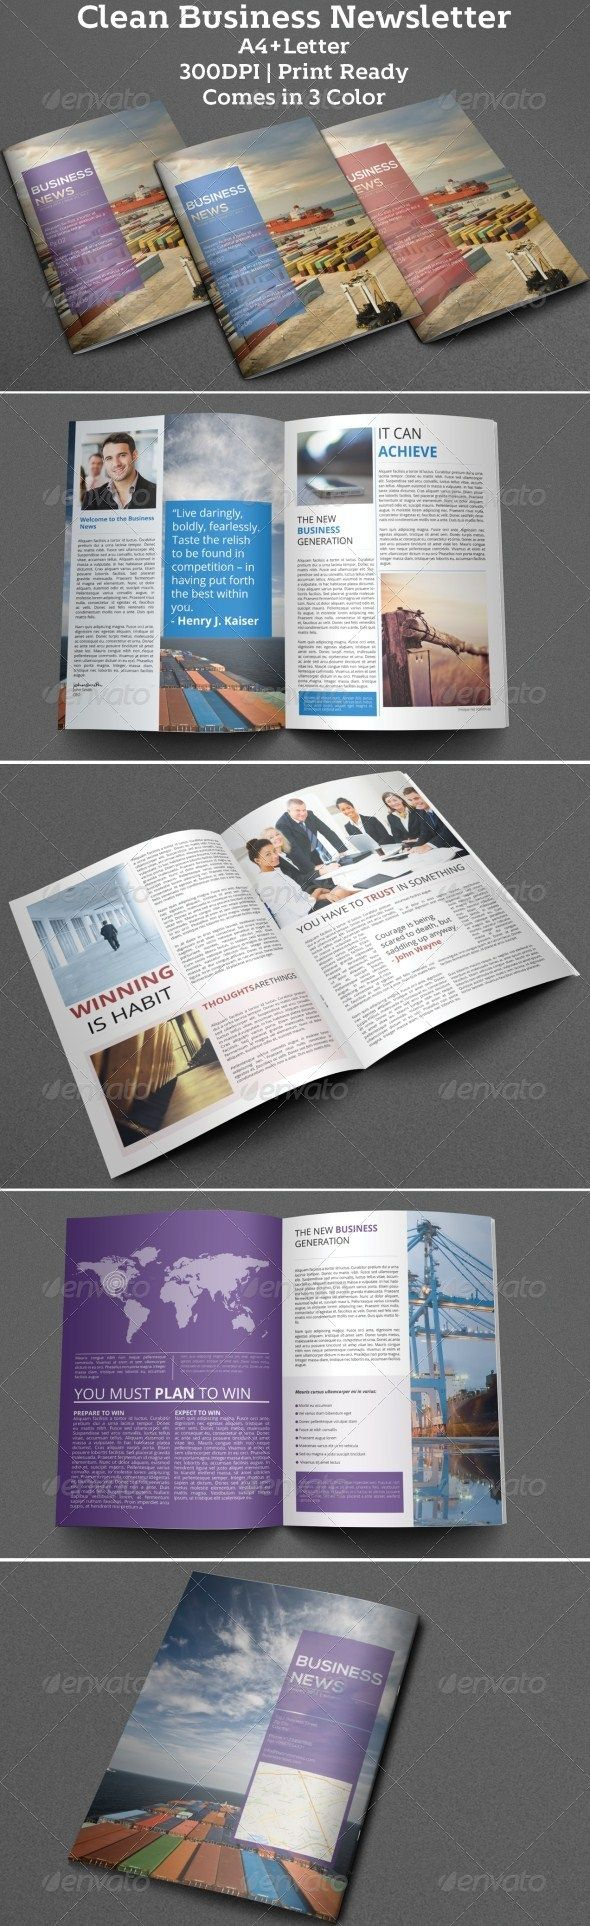 Corporate business newsletter template cheaphphosting Image collections